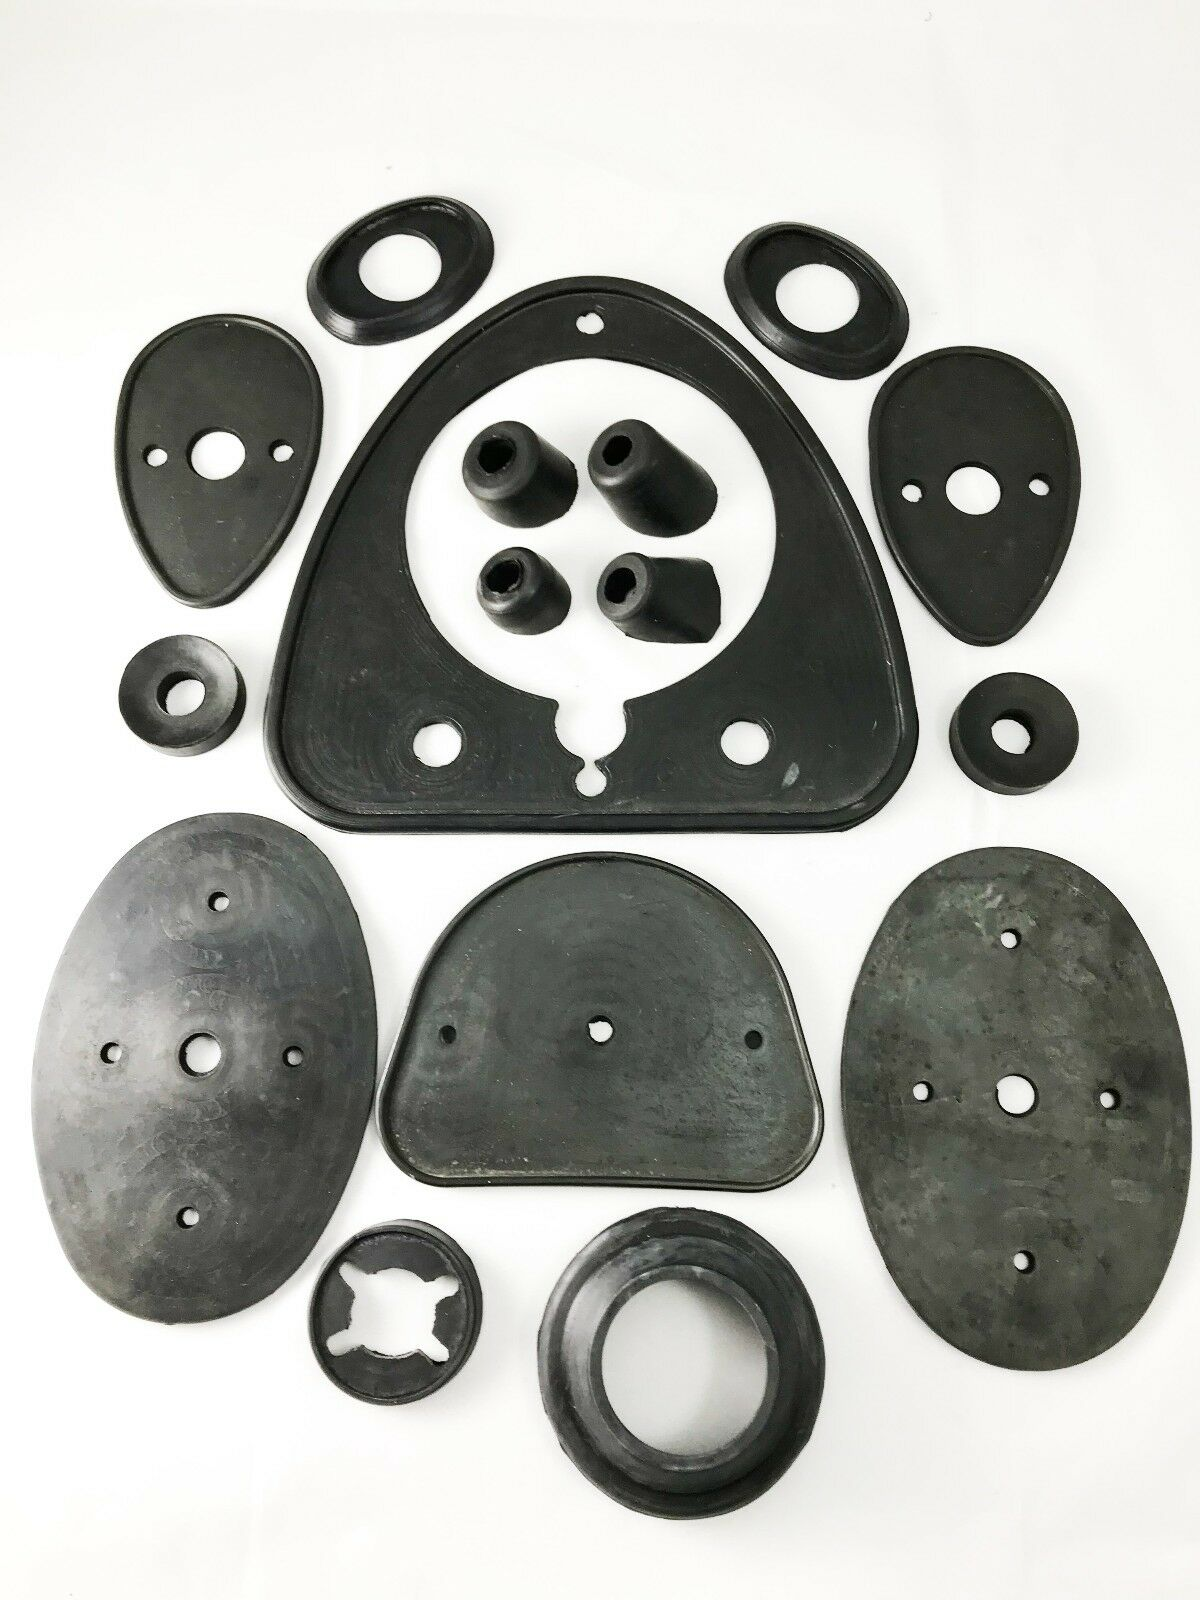 SET OF RUBBERS FOR CAR BODY FOR ISETTA 300 MOD. USA.